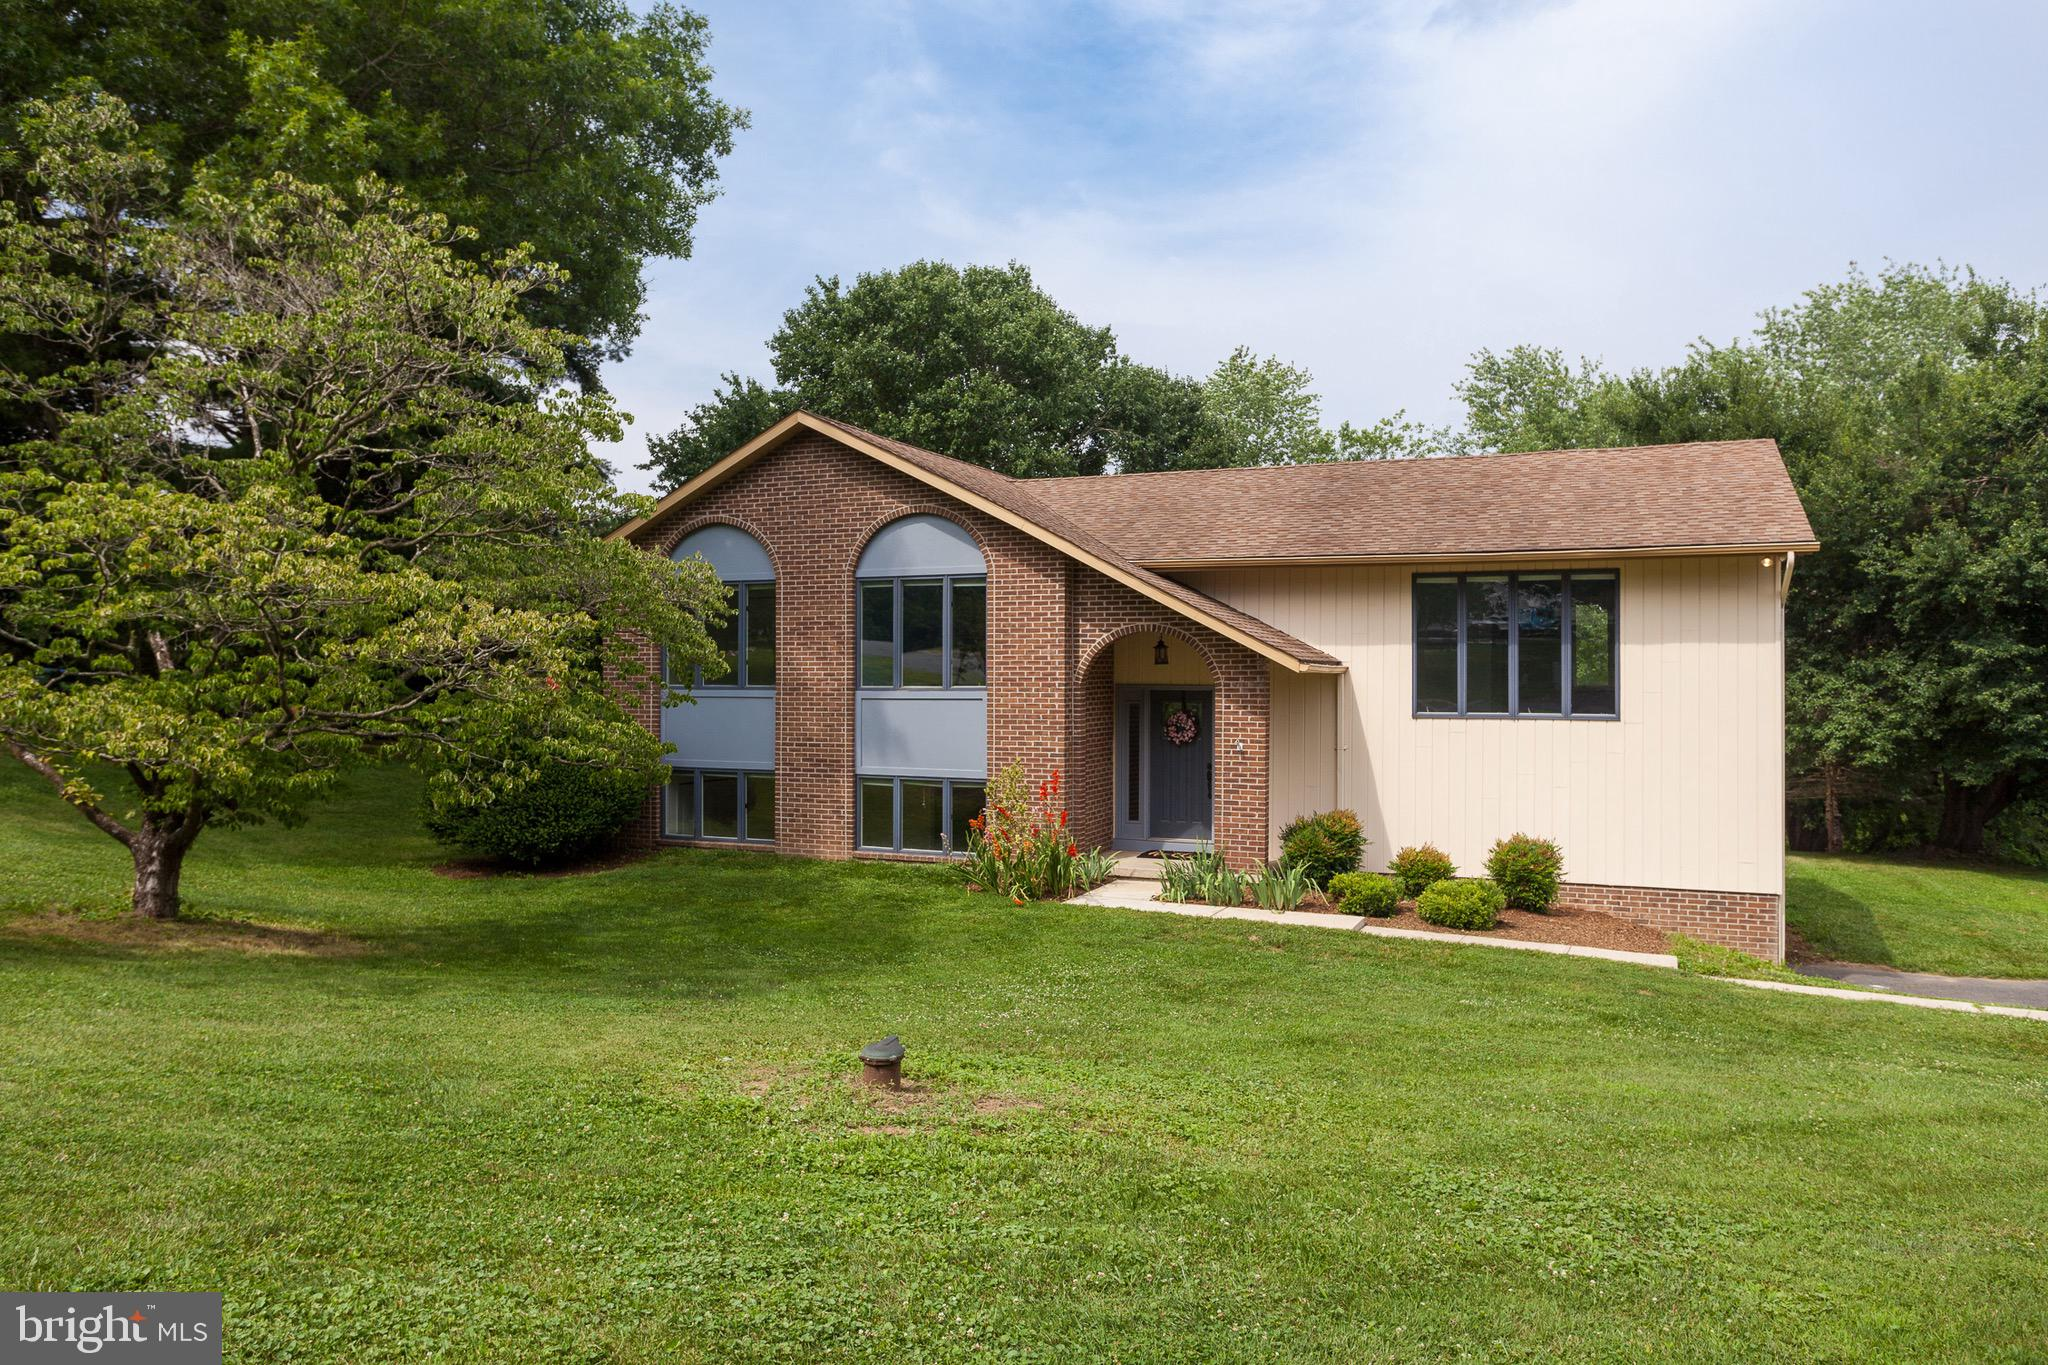 OFFERS MUST BE RECEIVED BY MONDAY, AUGUST 2, 2021 @ 7PM EST.  BEAUTIFUL HOME LOCATED ON A 1+ ACRE LO